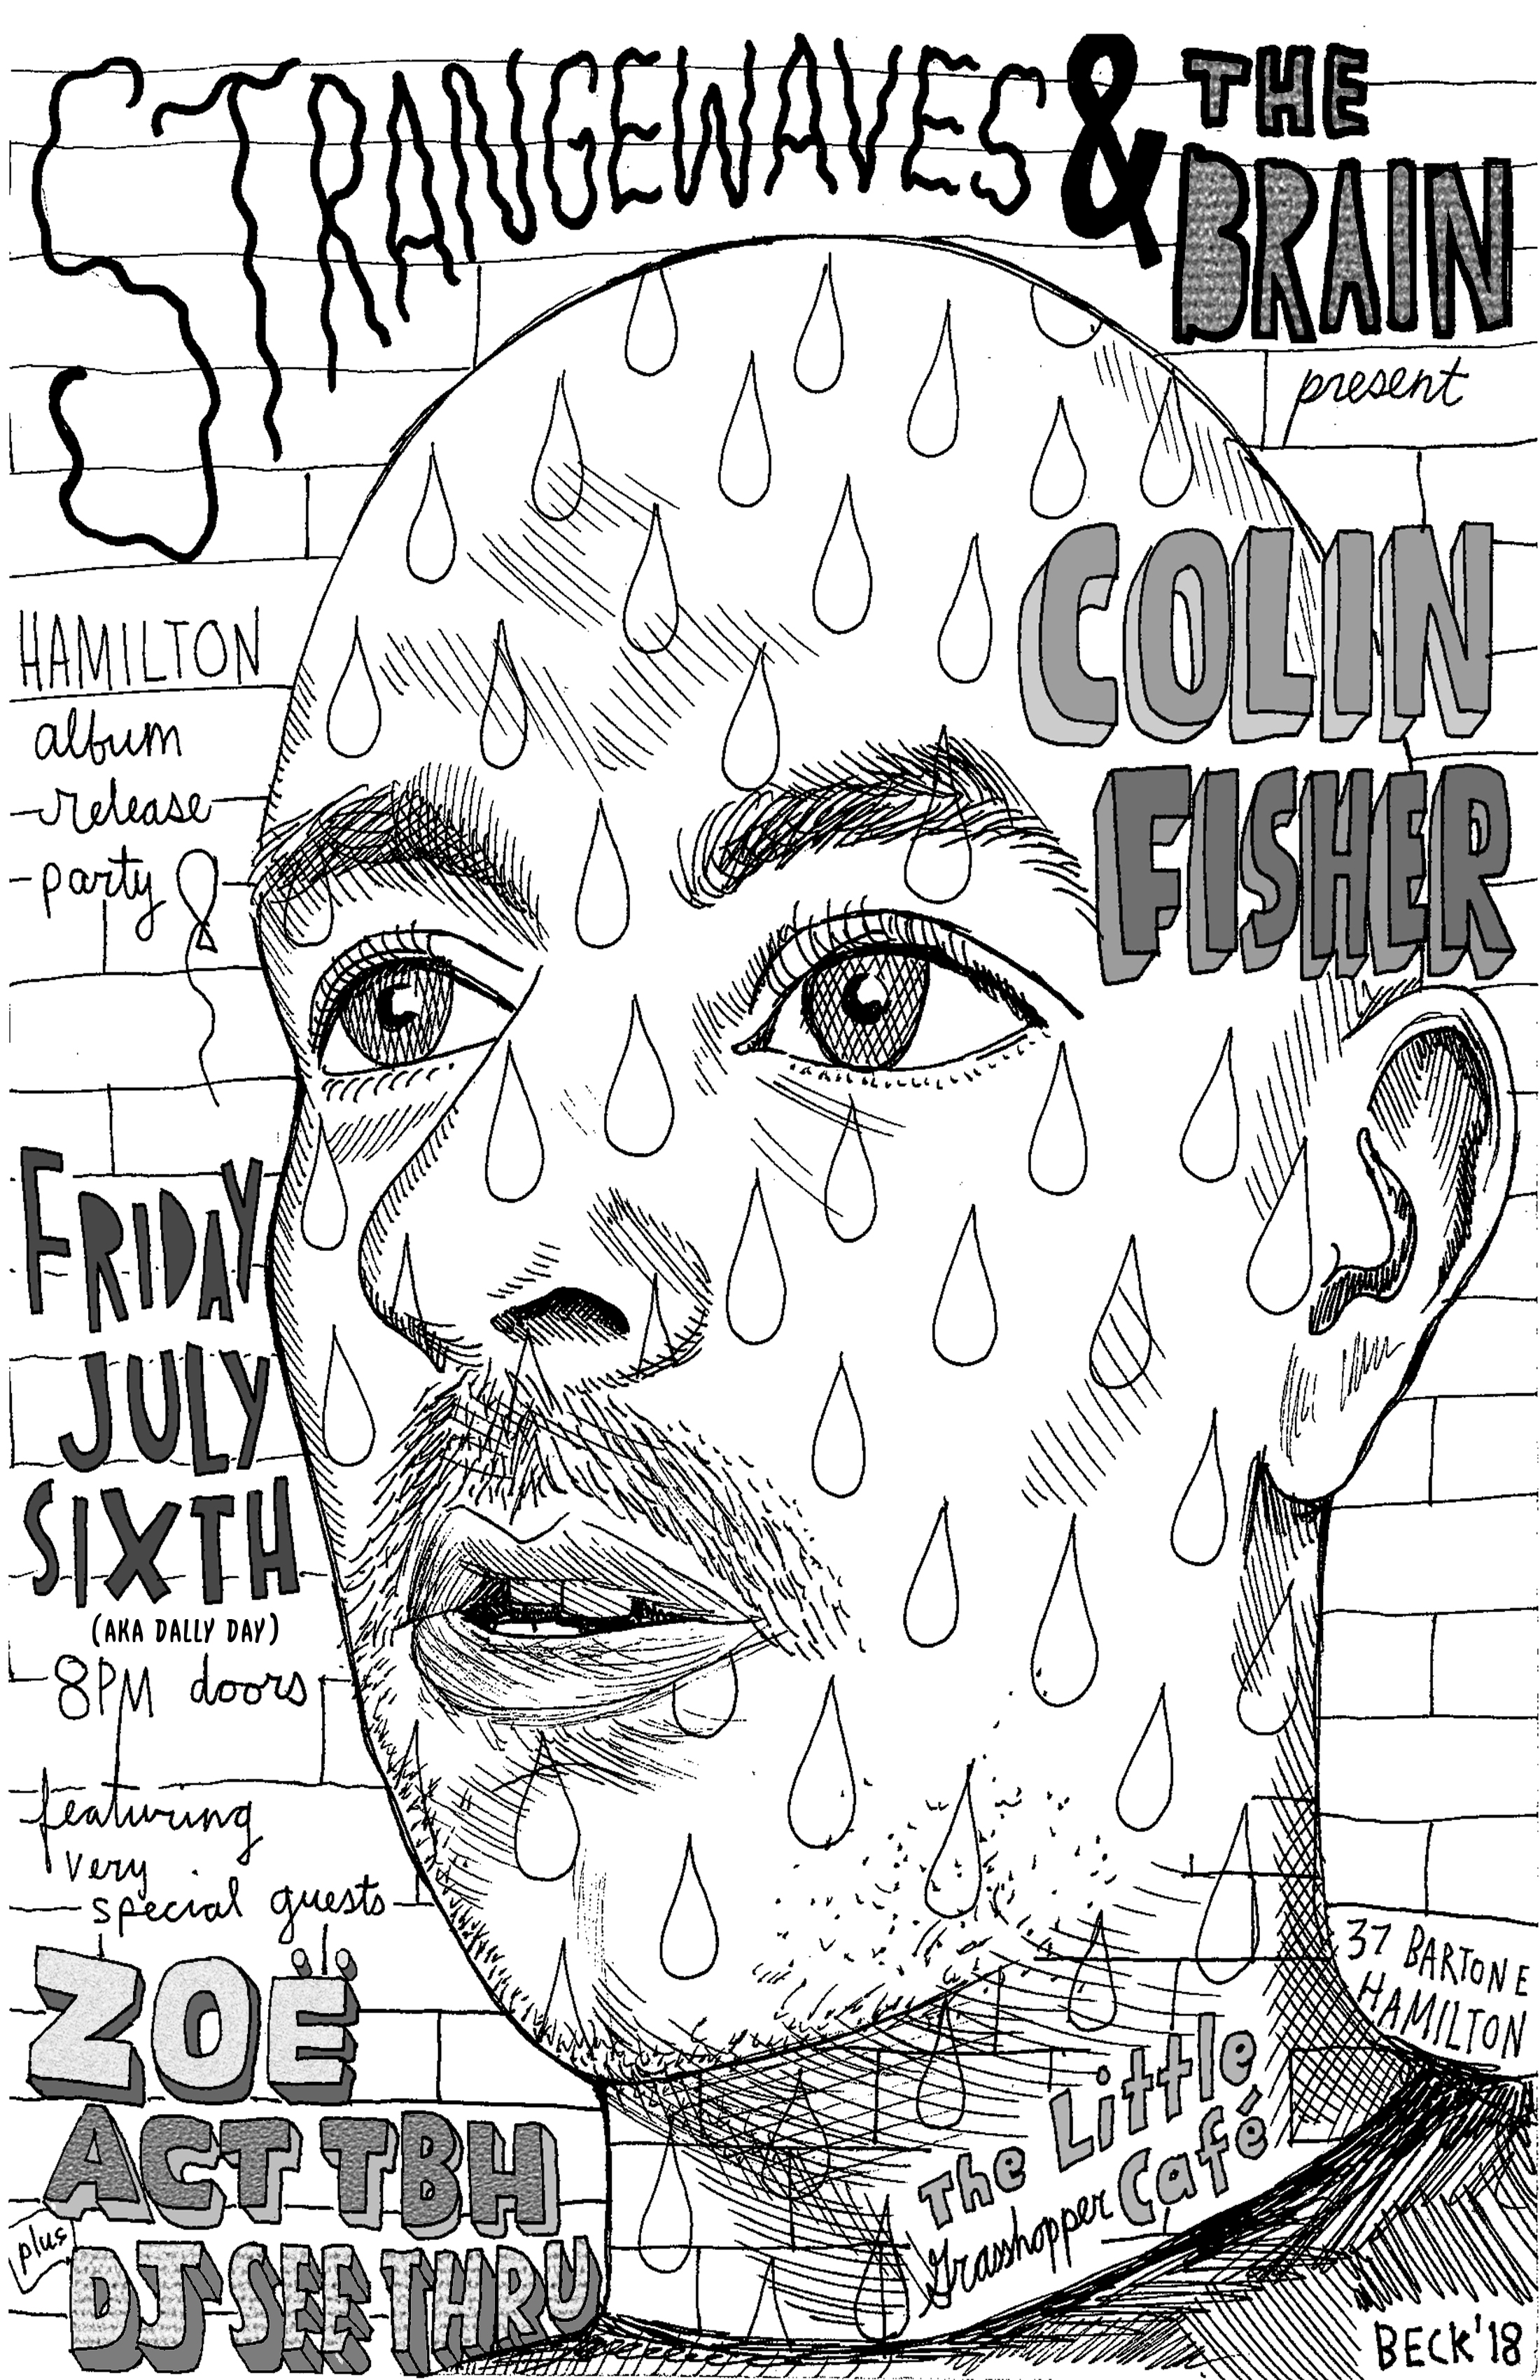 Colin Fisher (Hamilton LP Release), act tbh, DJ See Thru  @The Little Grasshopper Cafe